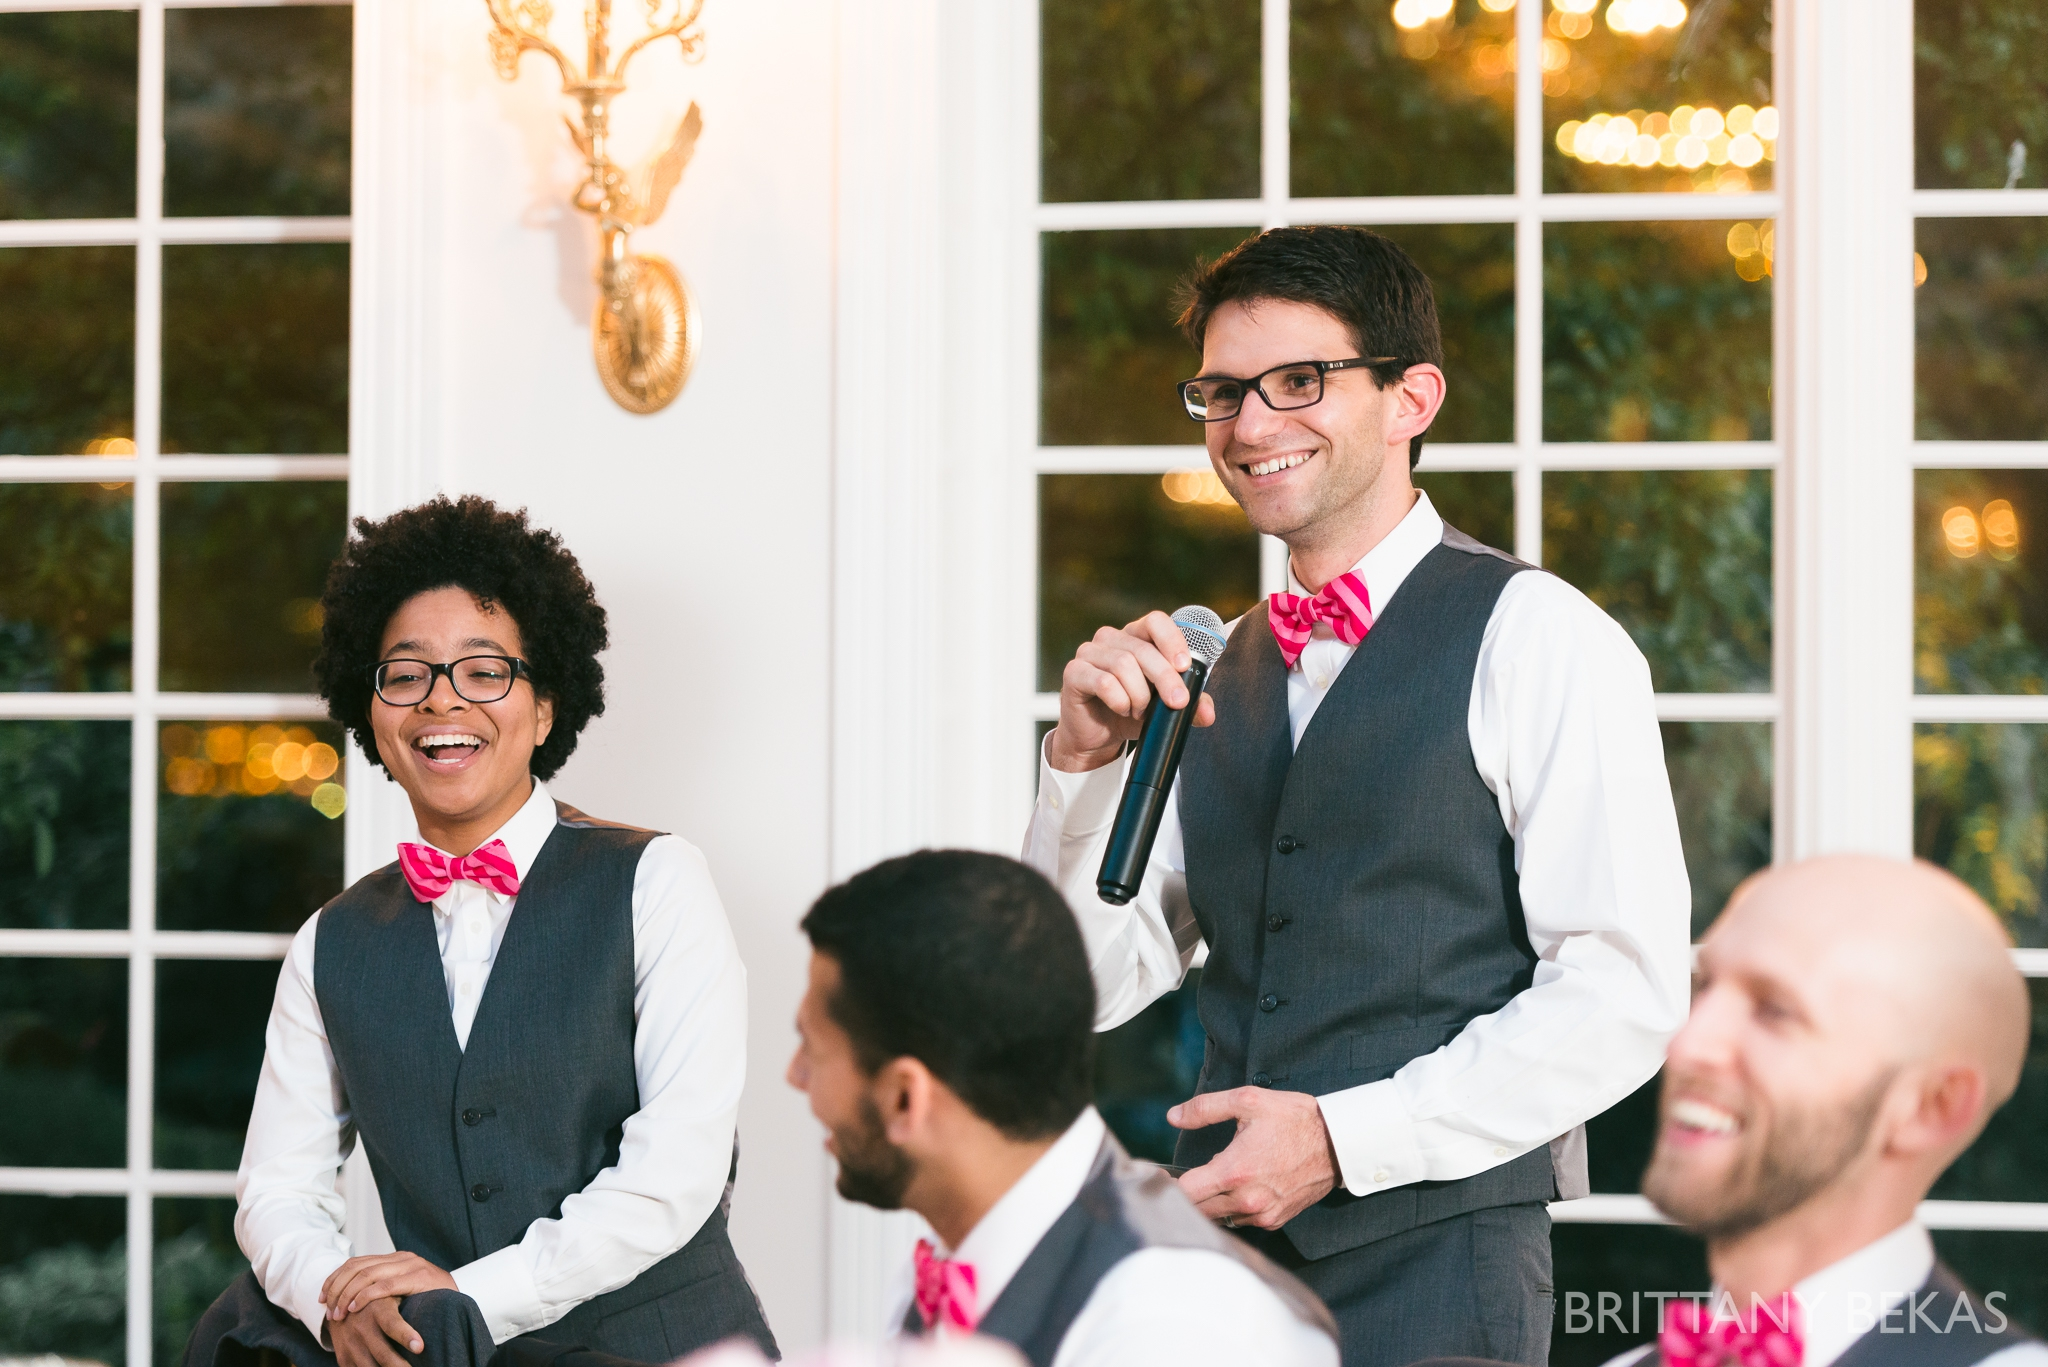 Patrick Haley Mansion Wedding - Brittany Bekas Photography_0035